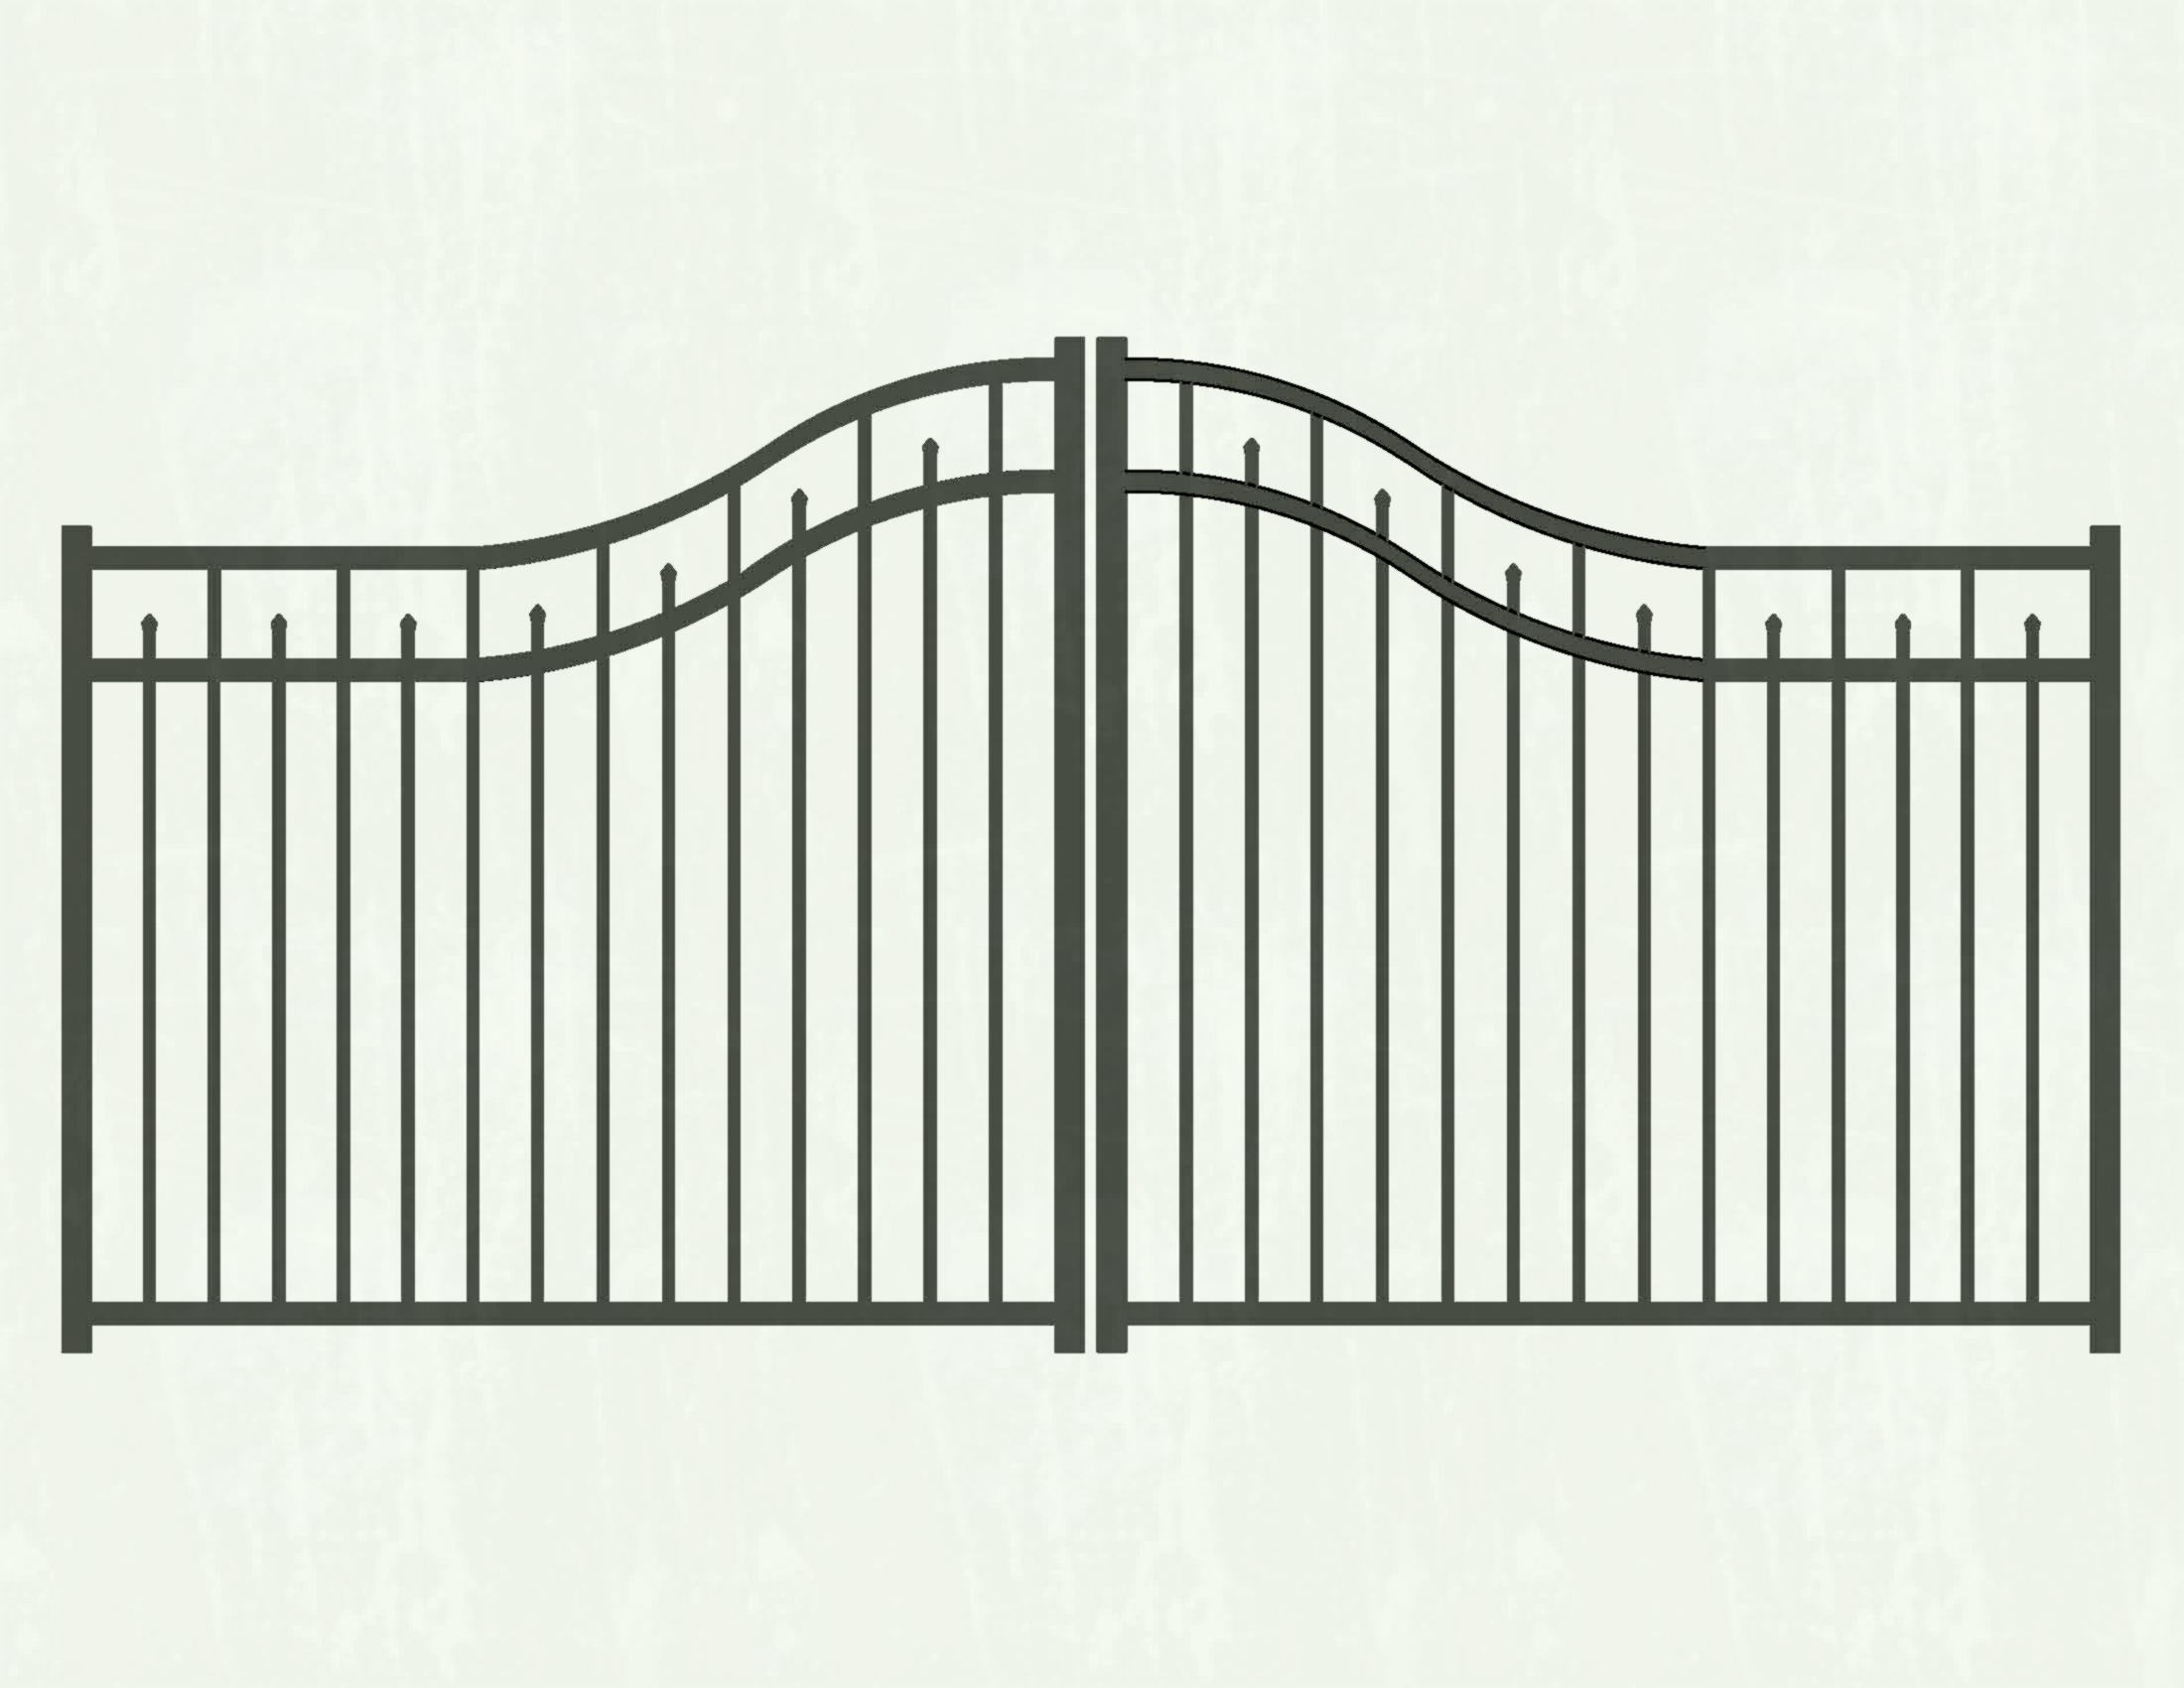 Free download clip art. Gate clipart coloring page